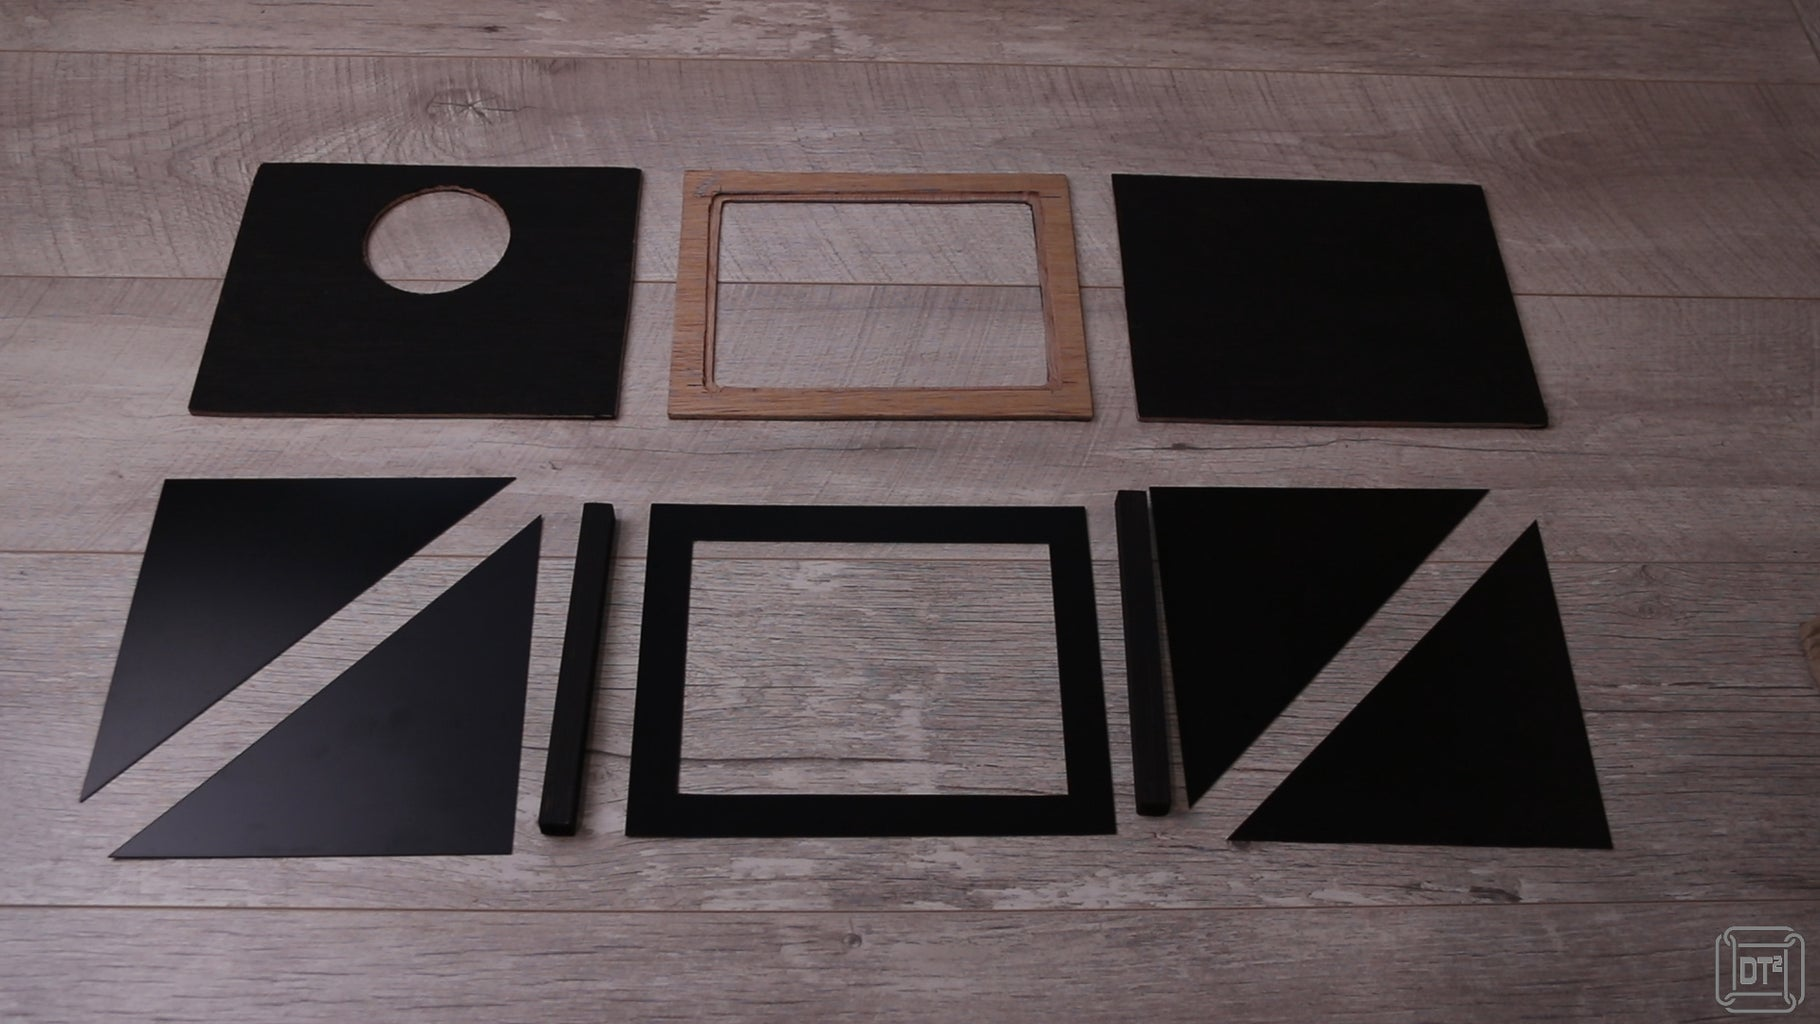 Cut and Paint Materials - Plastic Panels and Bars